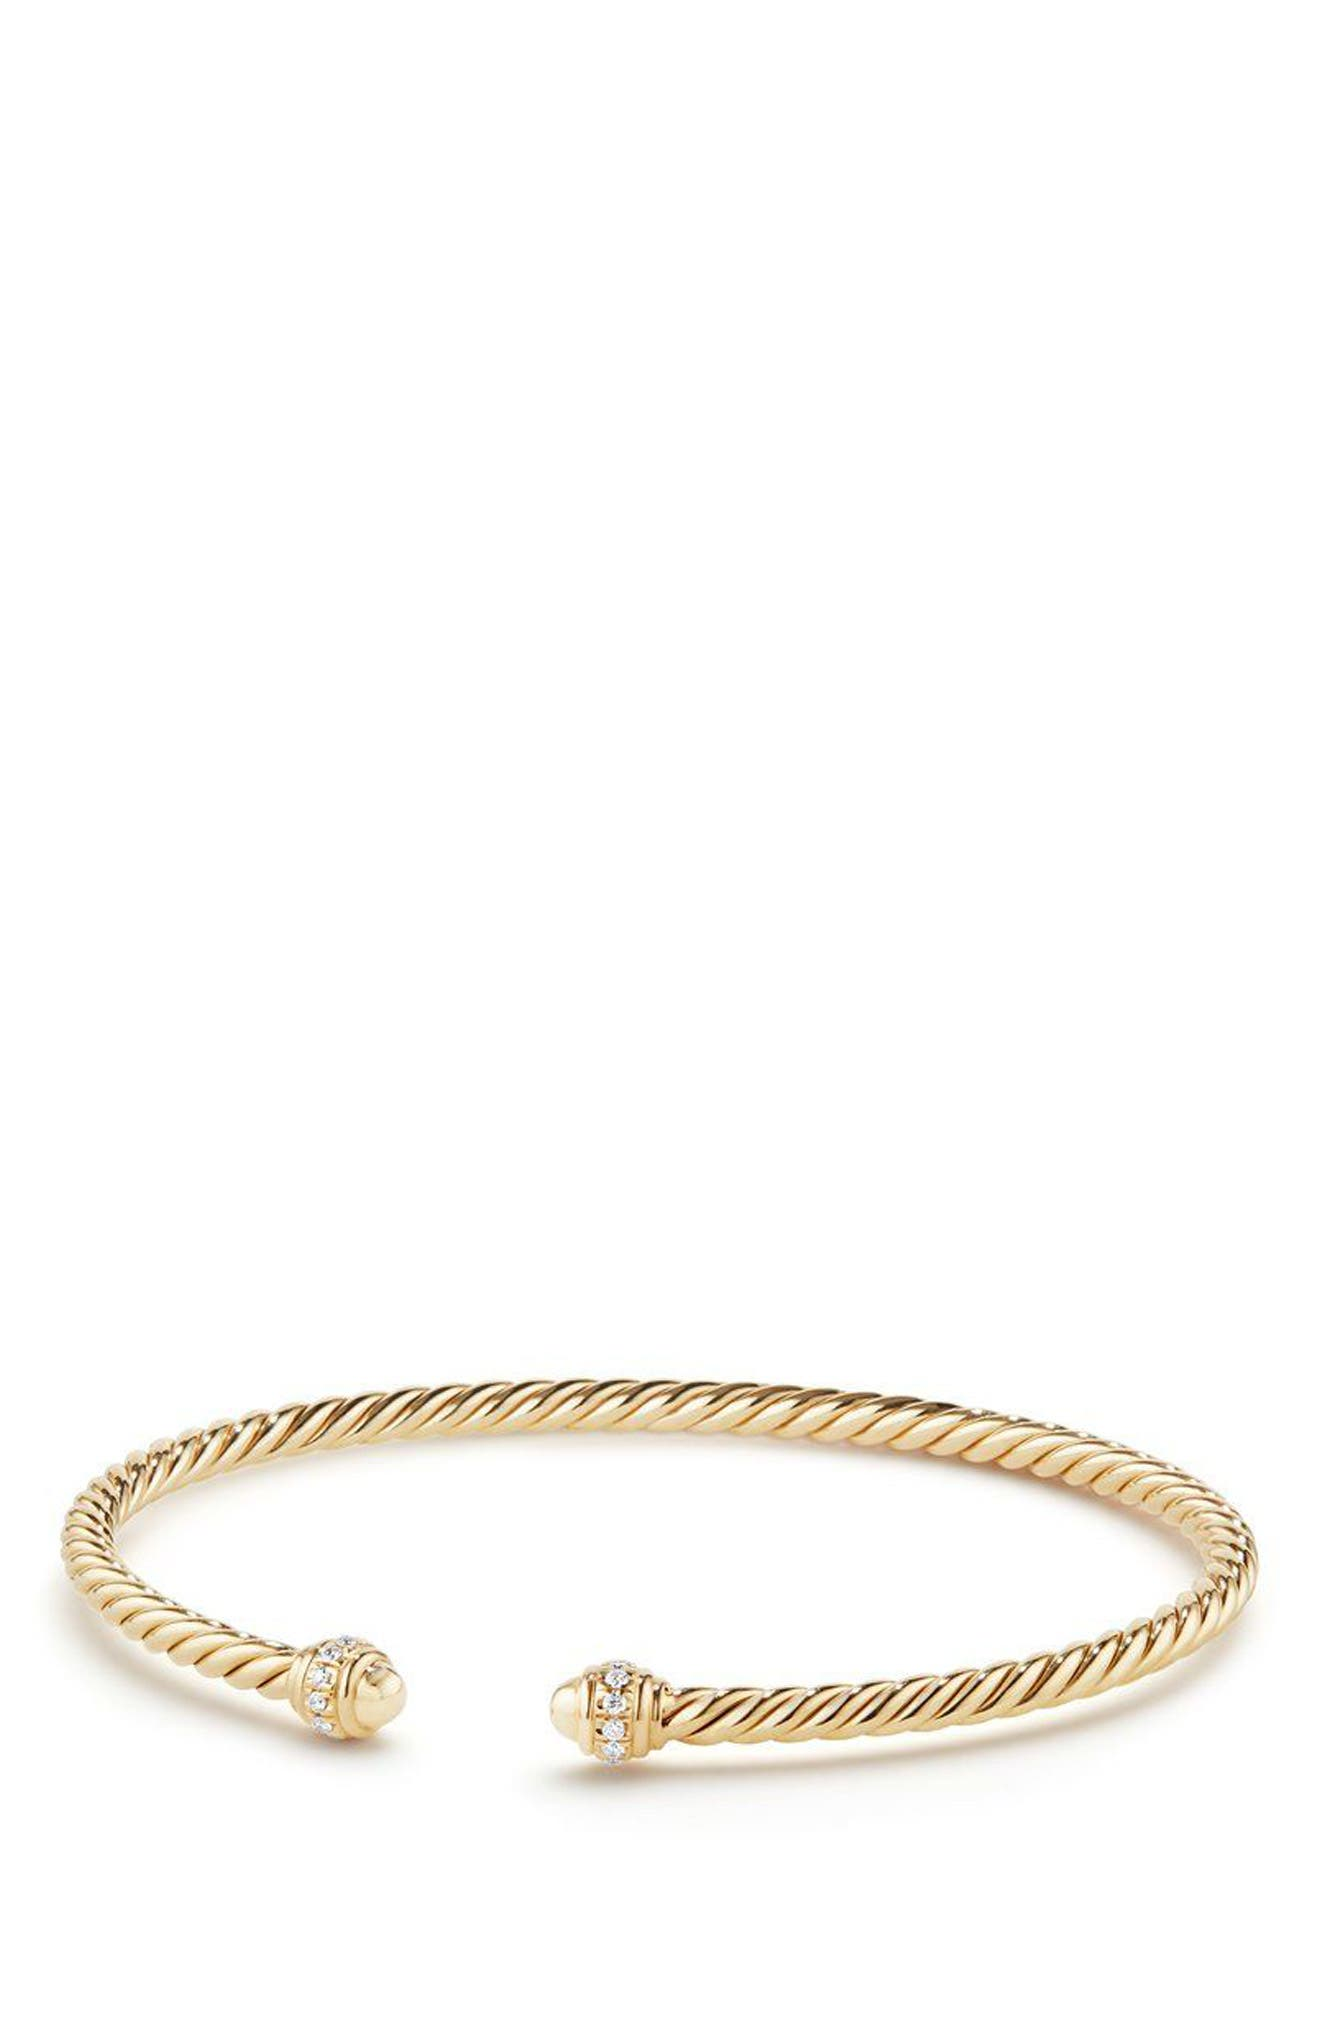 Cable Spira Bracelet in 18K Gold with Diamonds, 3mm,                         Main,                         color, GOLD/ DIAMOND